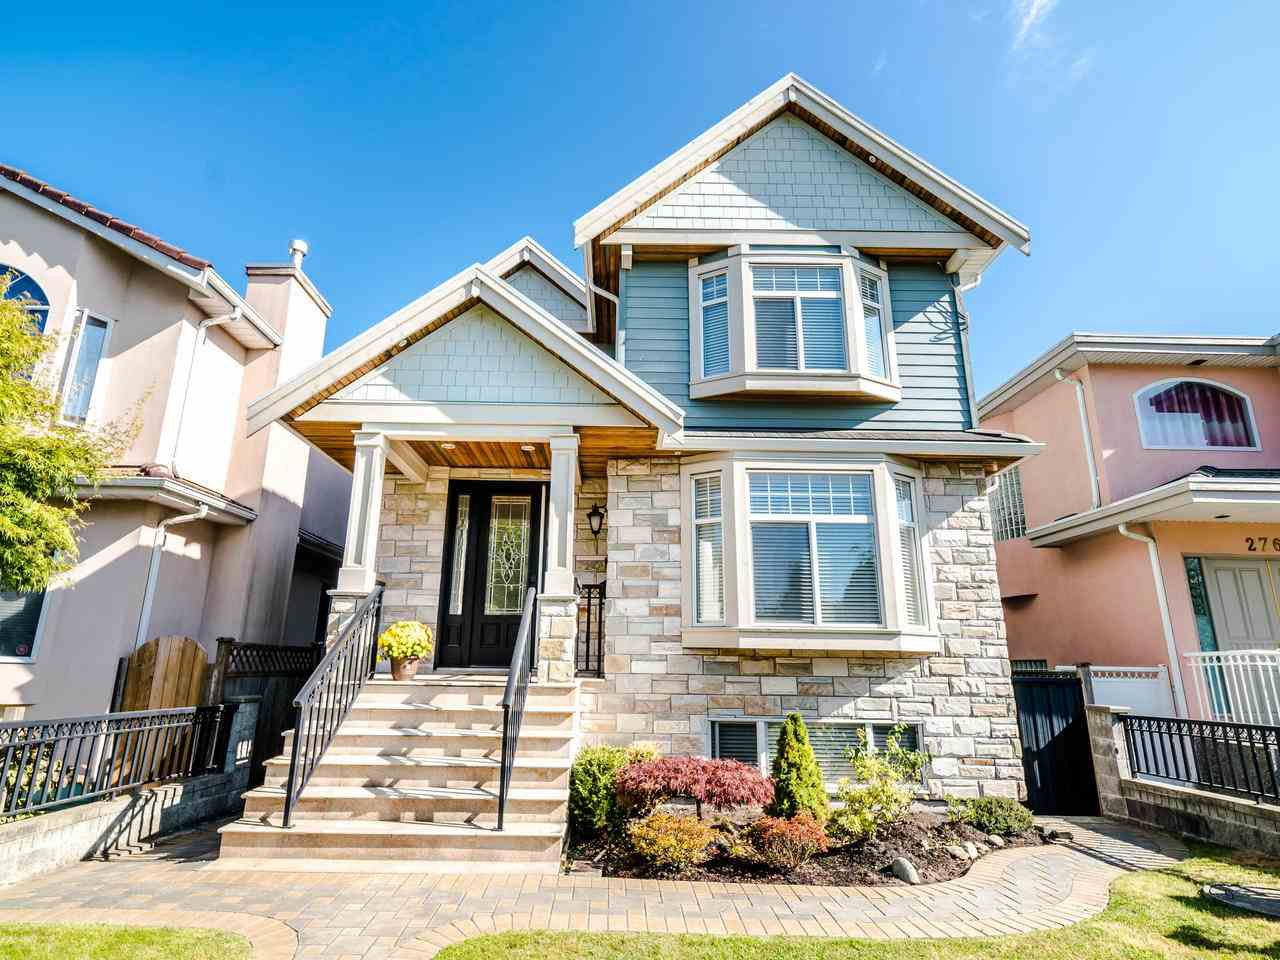 Main Photo: 2763 E 48TH Avenue in Vancouver: Killarney VE House for sale (Vancouver East)  : MLS®# R2482941